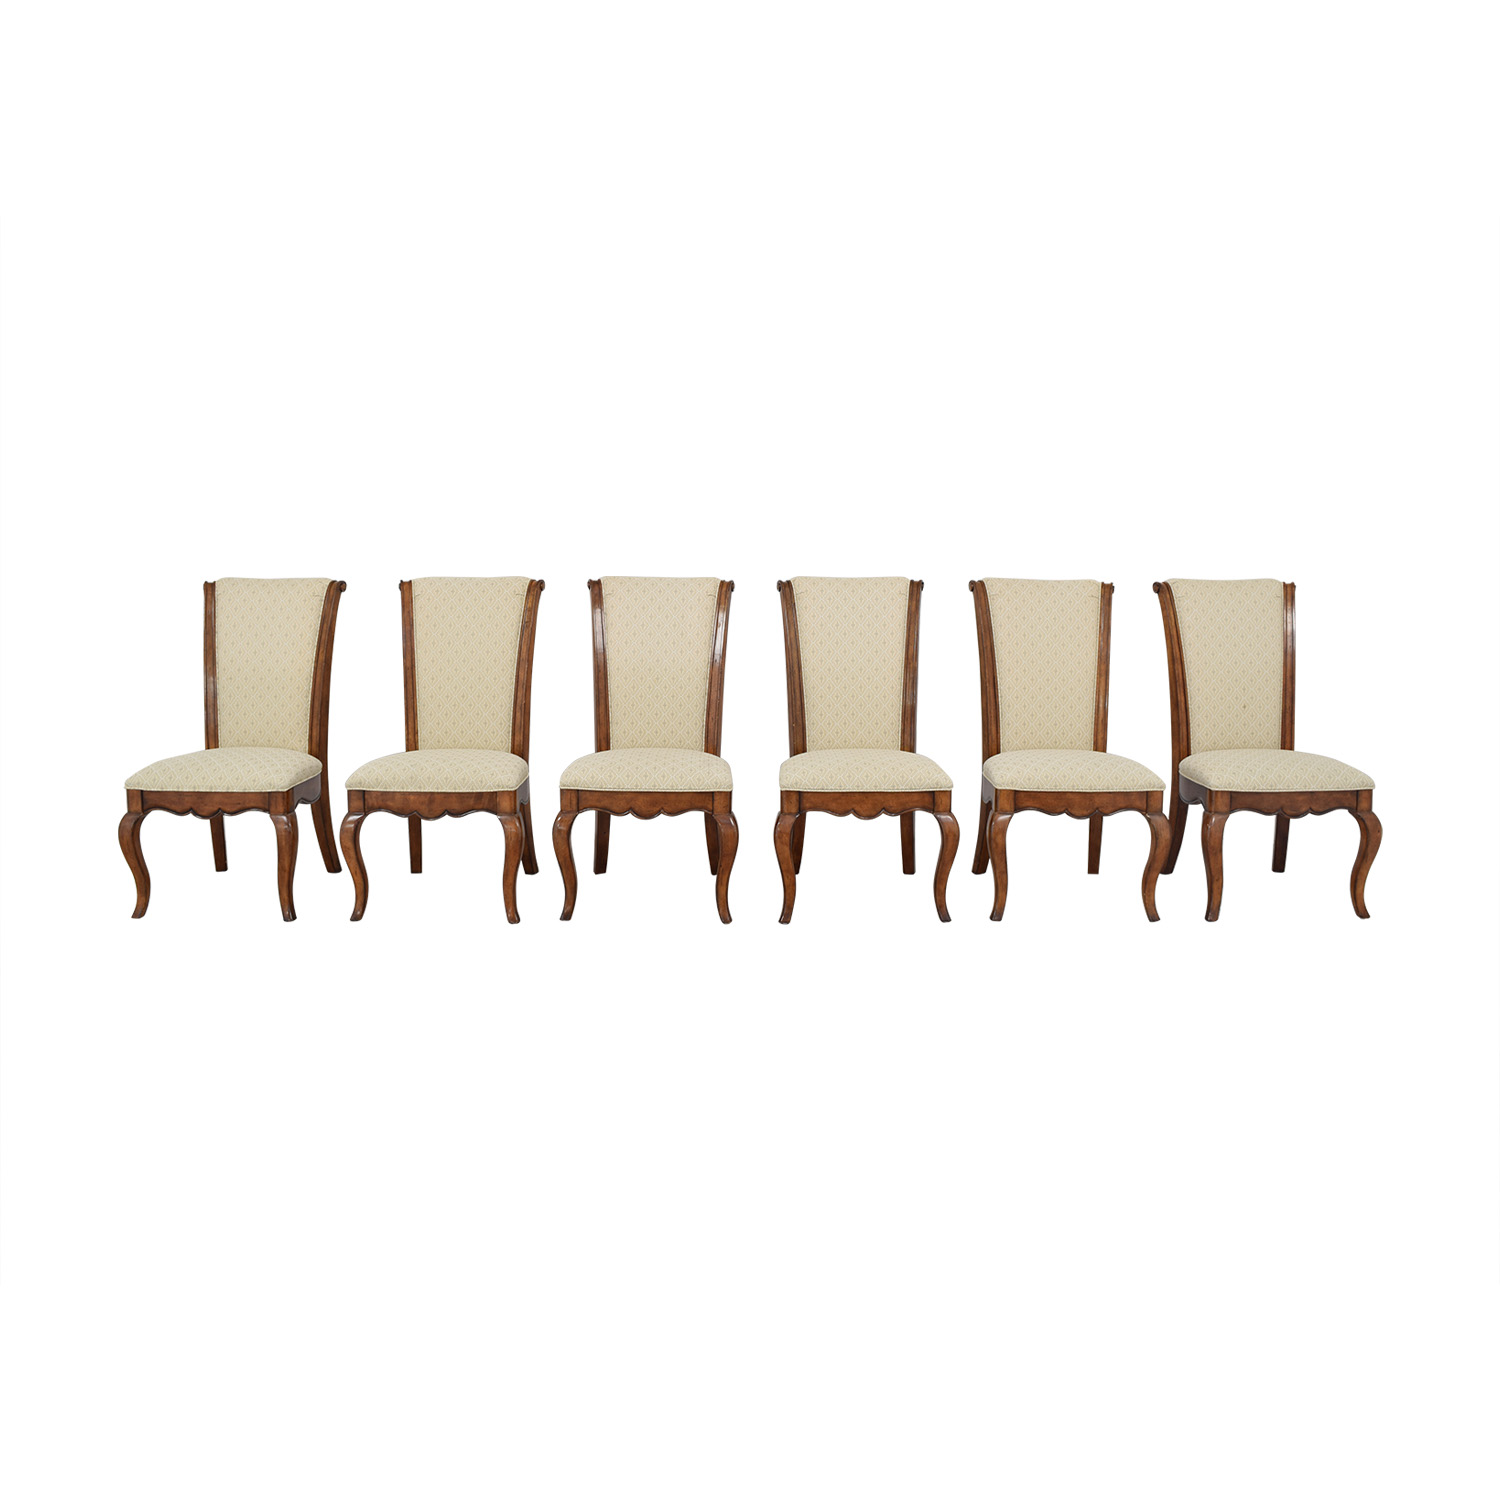 Drexel Heritage Drexel Heritage Extendable Dining Chairs nyc